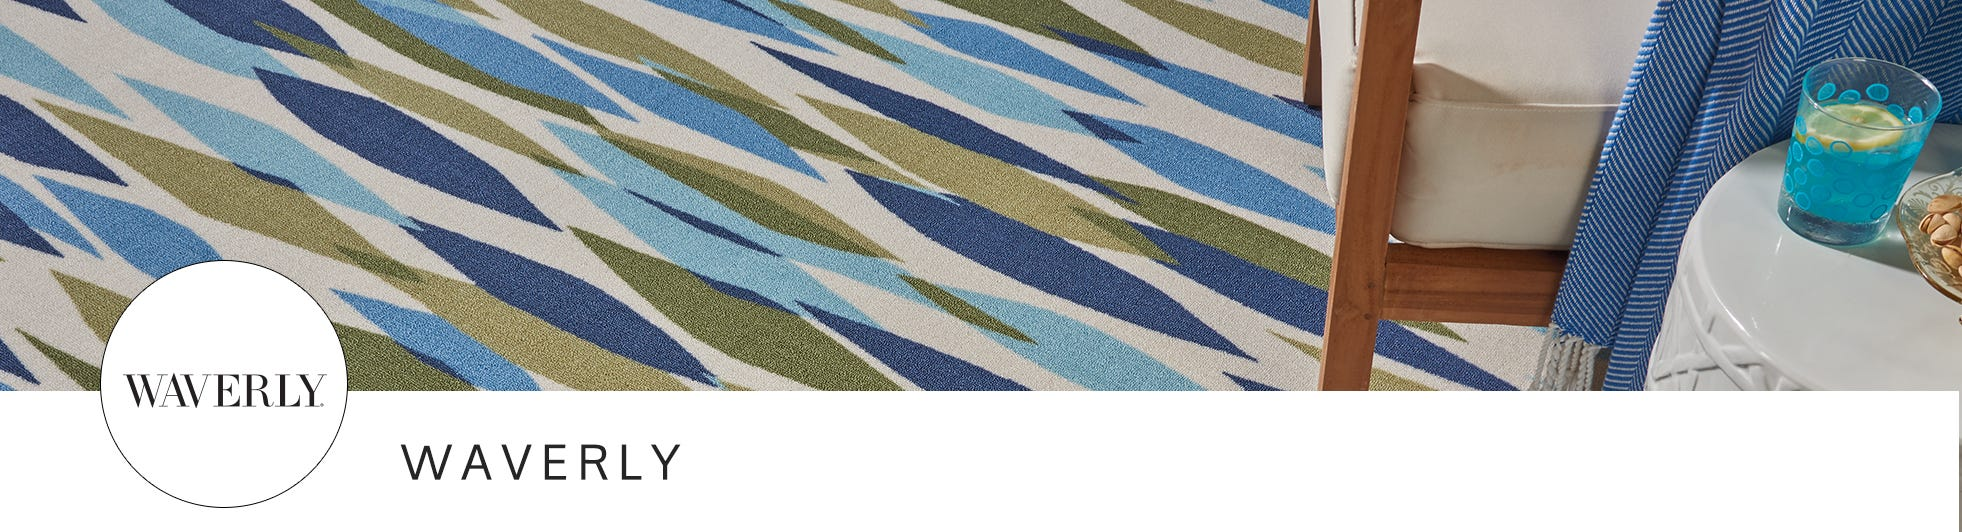 Waverly Brands Area Rugs